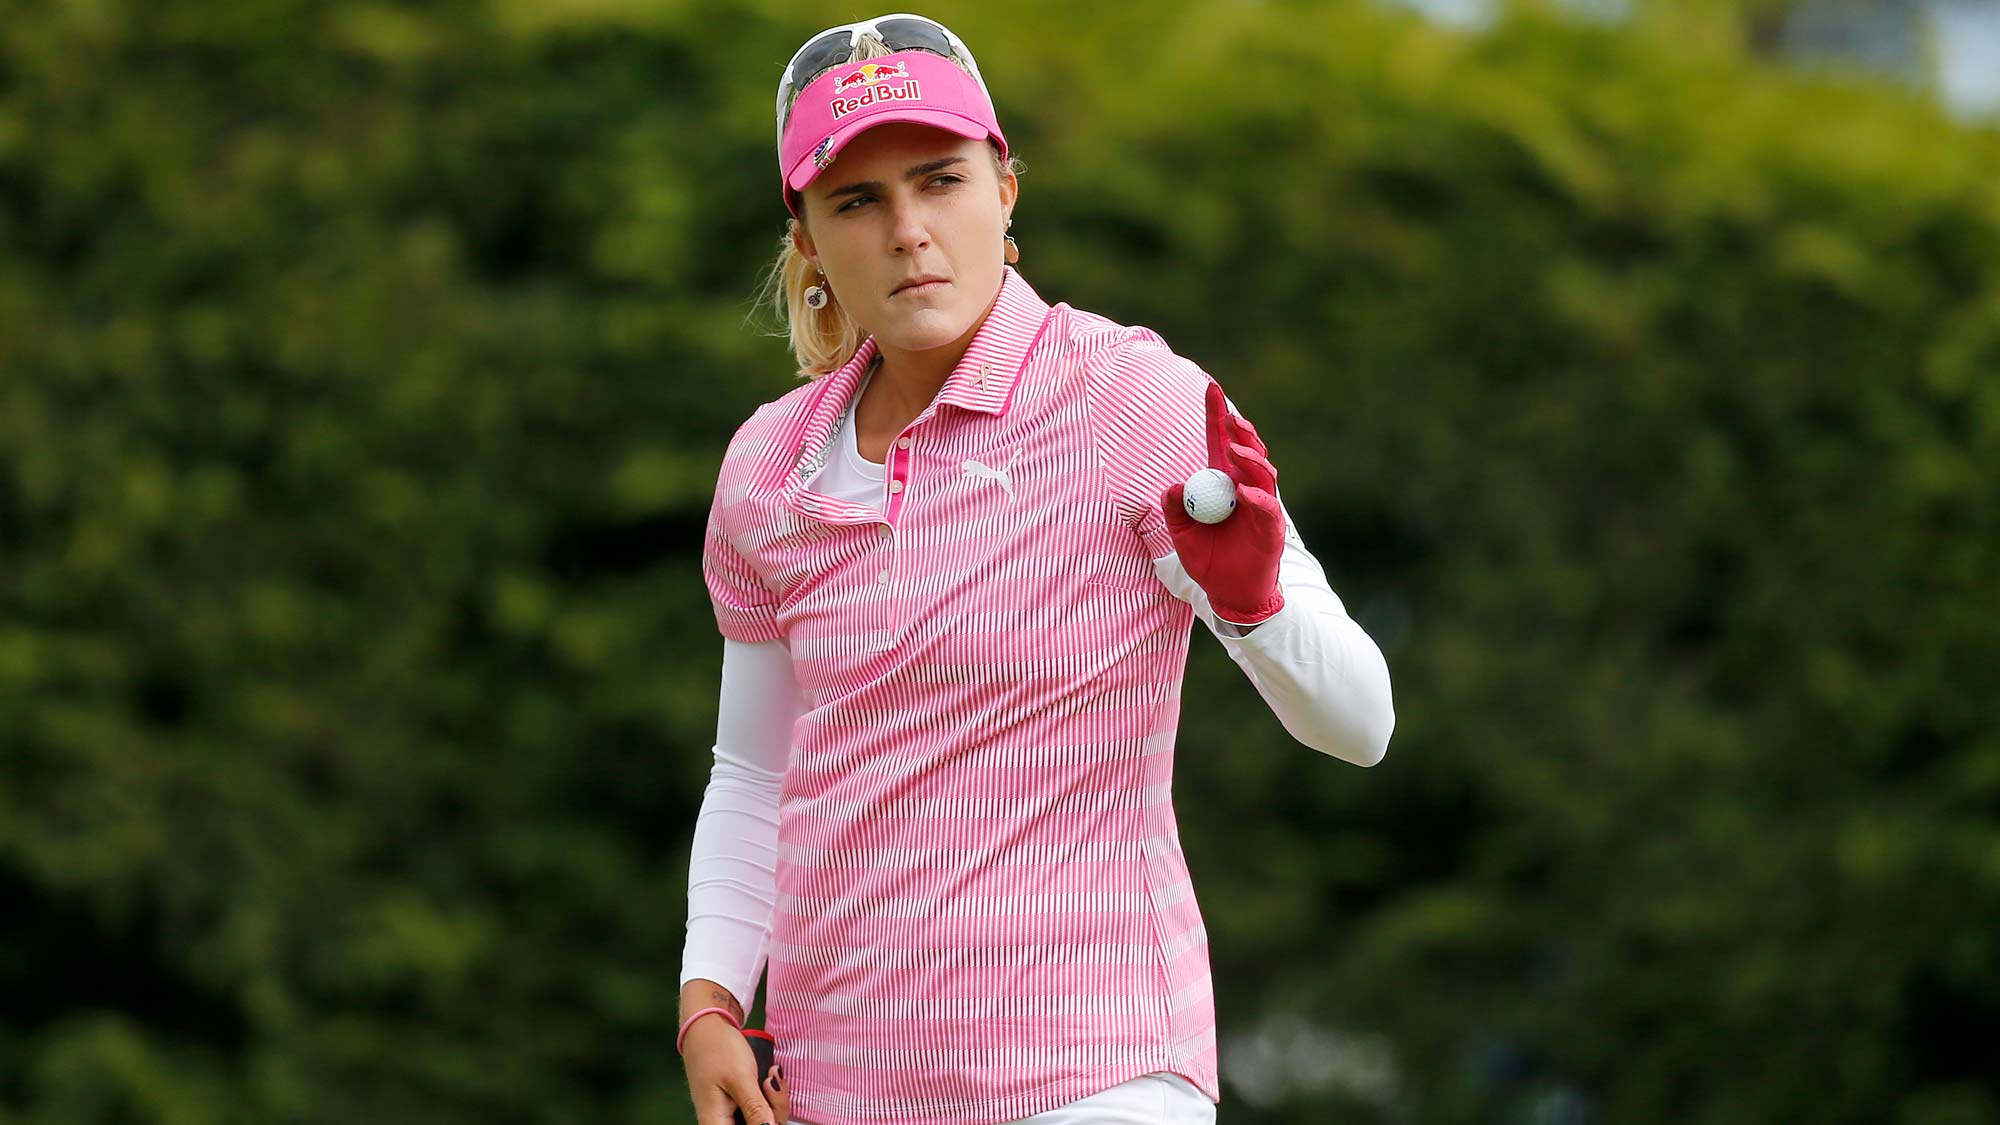 Lexi Thompson waves after making a putt on the 18th hole during the third round of the LPGA Mediheal Championship